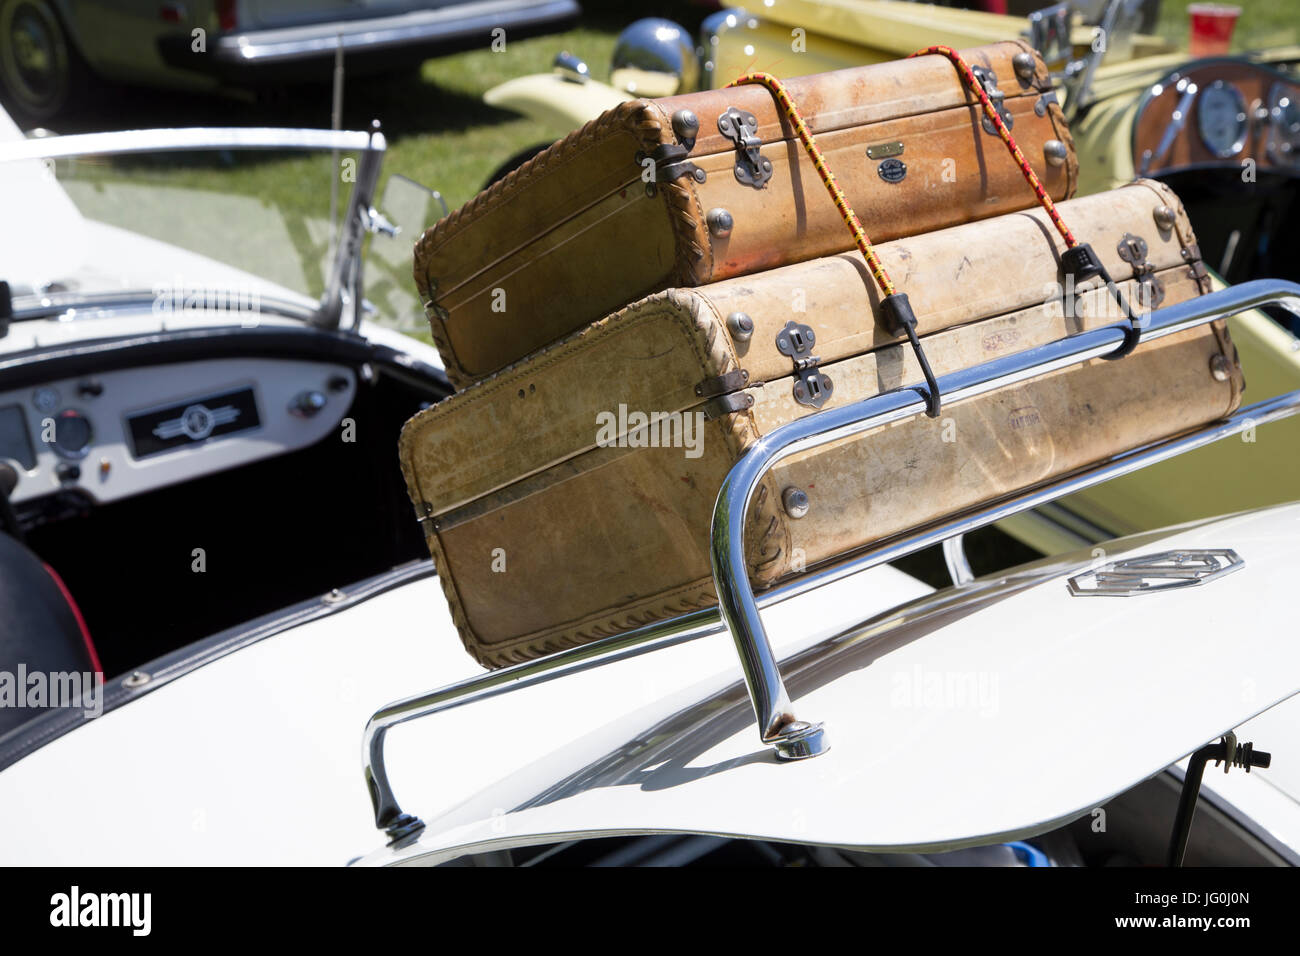 Suitcases on luggage rack on trunk lid of MG car - Stock Image